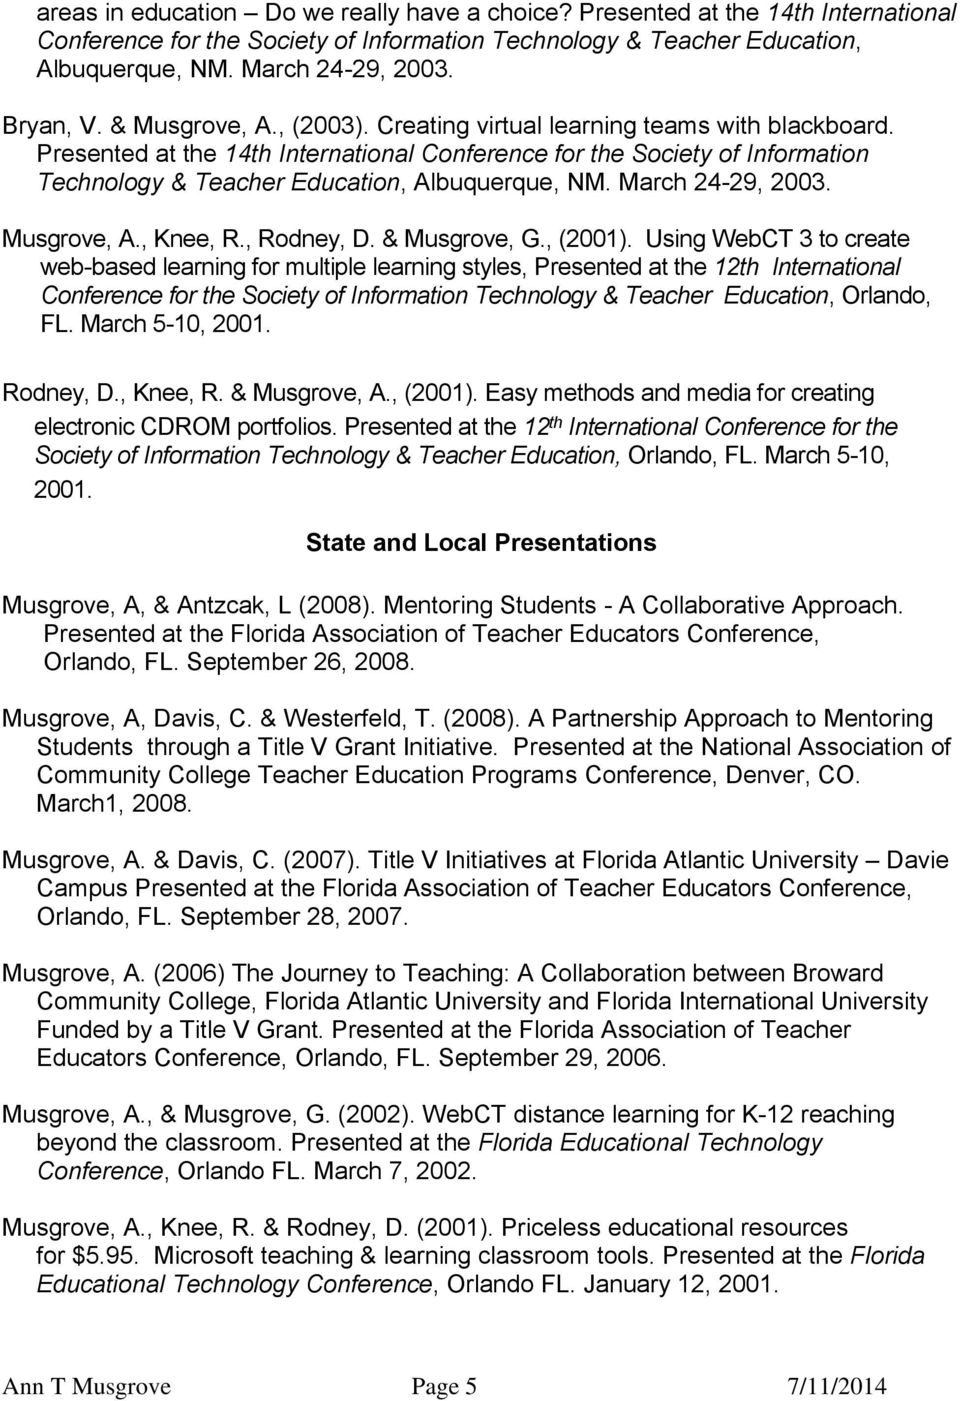 Presented at the 14th International Conference for the Society of Information Technology & Teacher Education, Albuquerque, NM. March 24-29, 2003. Musgrove, A., Knee, R., Rodney, D. & Musgrove, G.